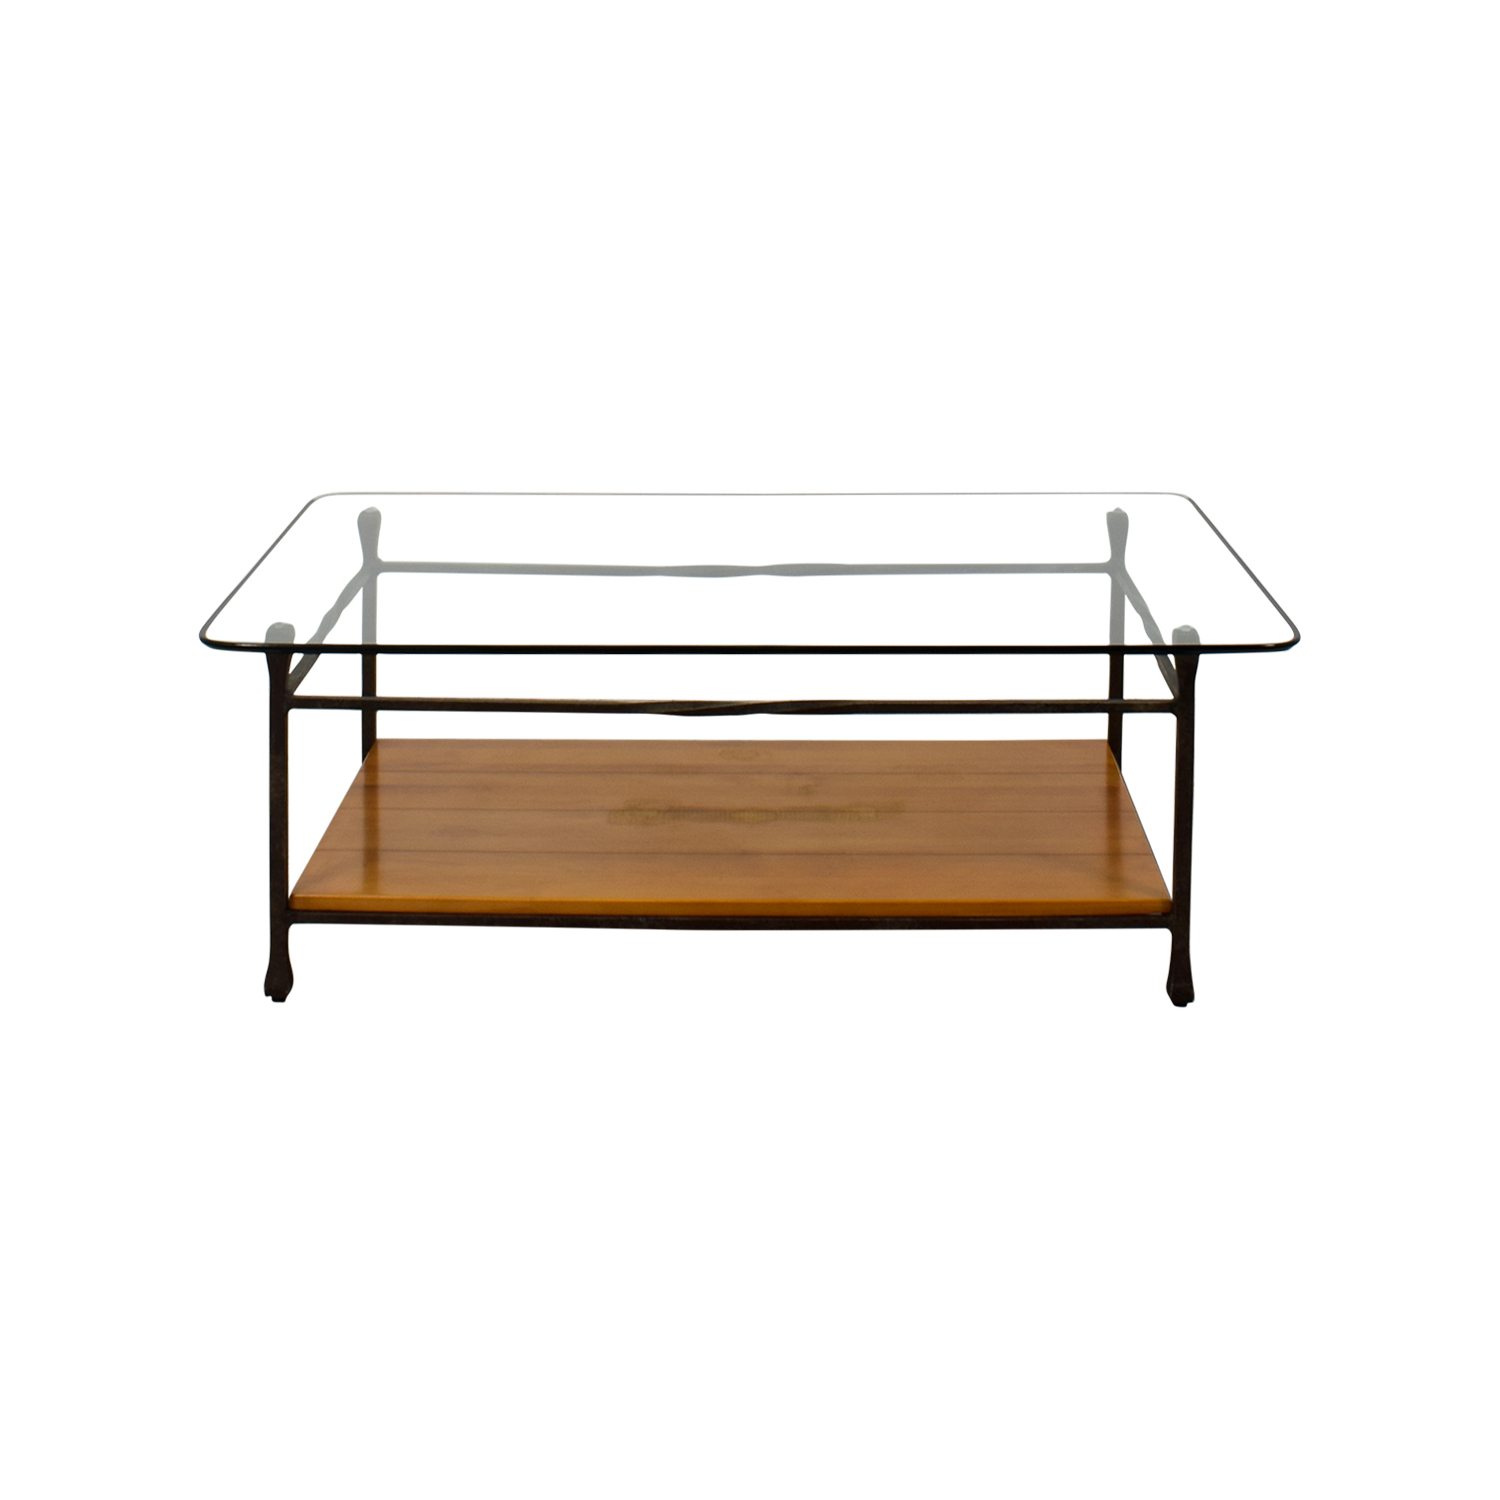 [%79% Off – Macy's Macy's White Two Drawer Coffee Table / Tables For Trendy Allen Cocktail Tables|Allen Cocktail Tables For Trendy 79% Off – Macy's Macy's White Two Drawer Coffee Table / Tables|2018 Allen Cocktail Tables For 79% Off – Macy's Macy's White Two Drawer Coffee Table / Tables|Trendy 79% Off – Macy's Macy's White Two Drawer Coffee Table / Tables With Regard To Allen Cocktail Tables%] (View 18 of 20)